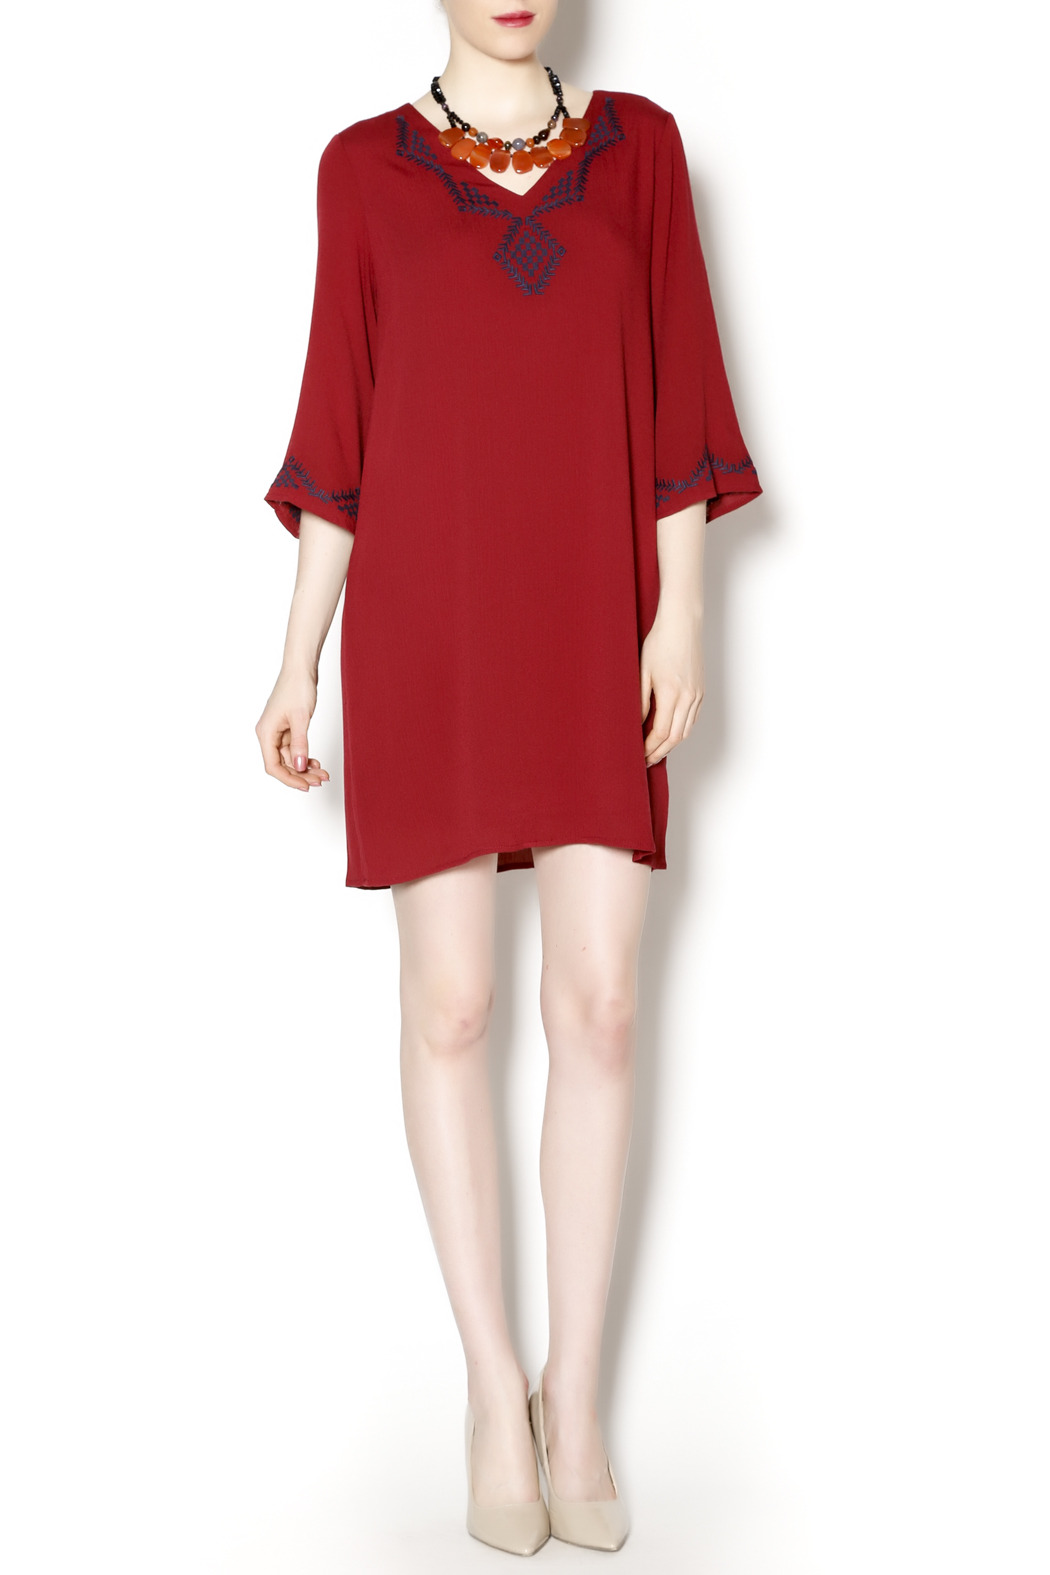 Final Touch Embroidered Red Gauze Dress - Front Full Image